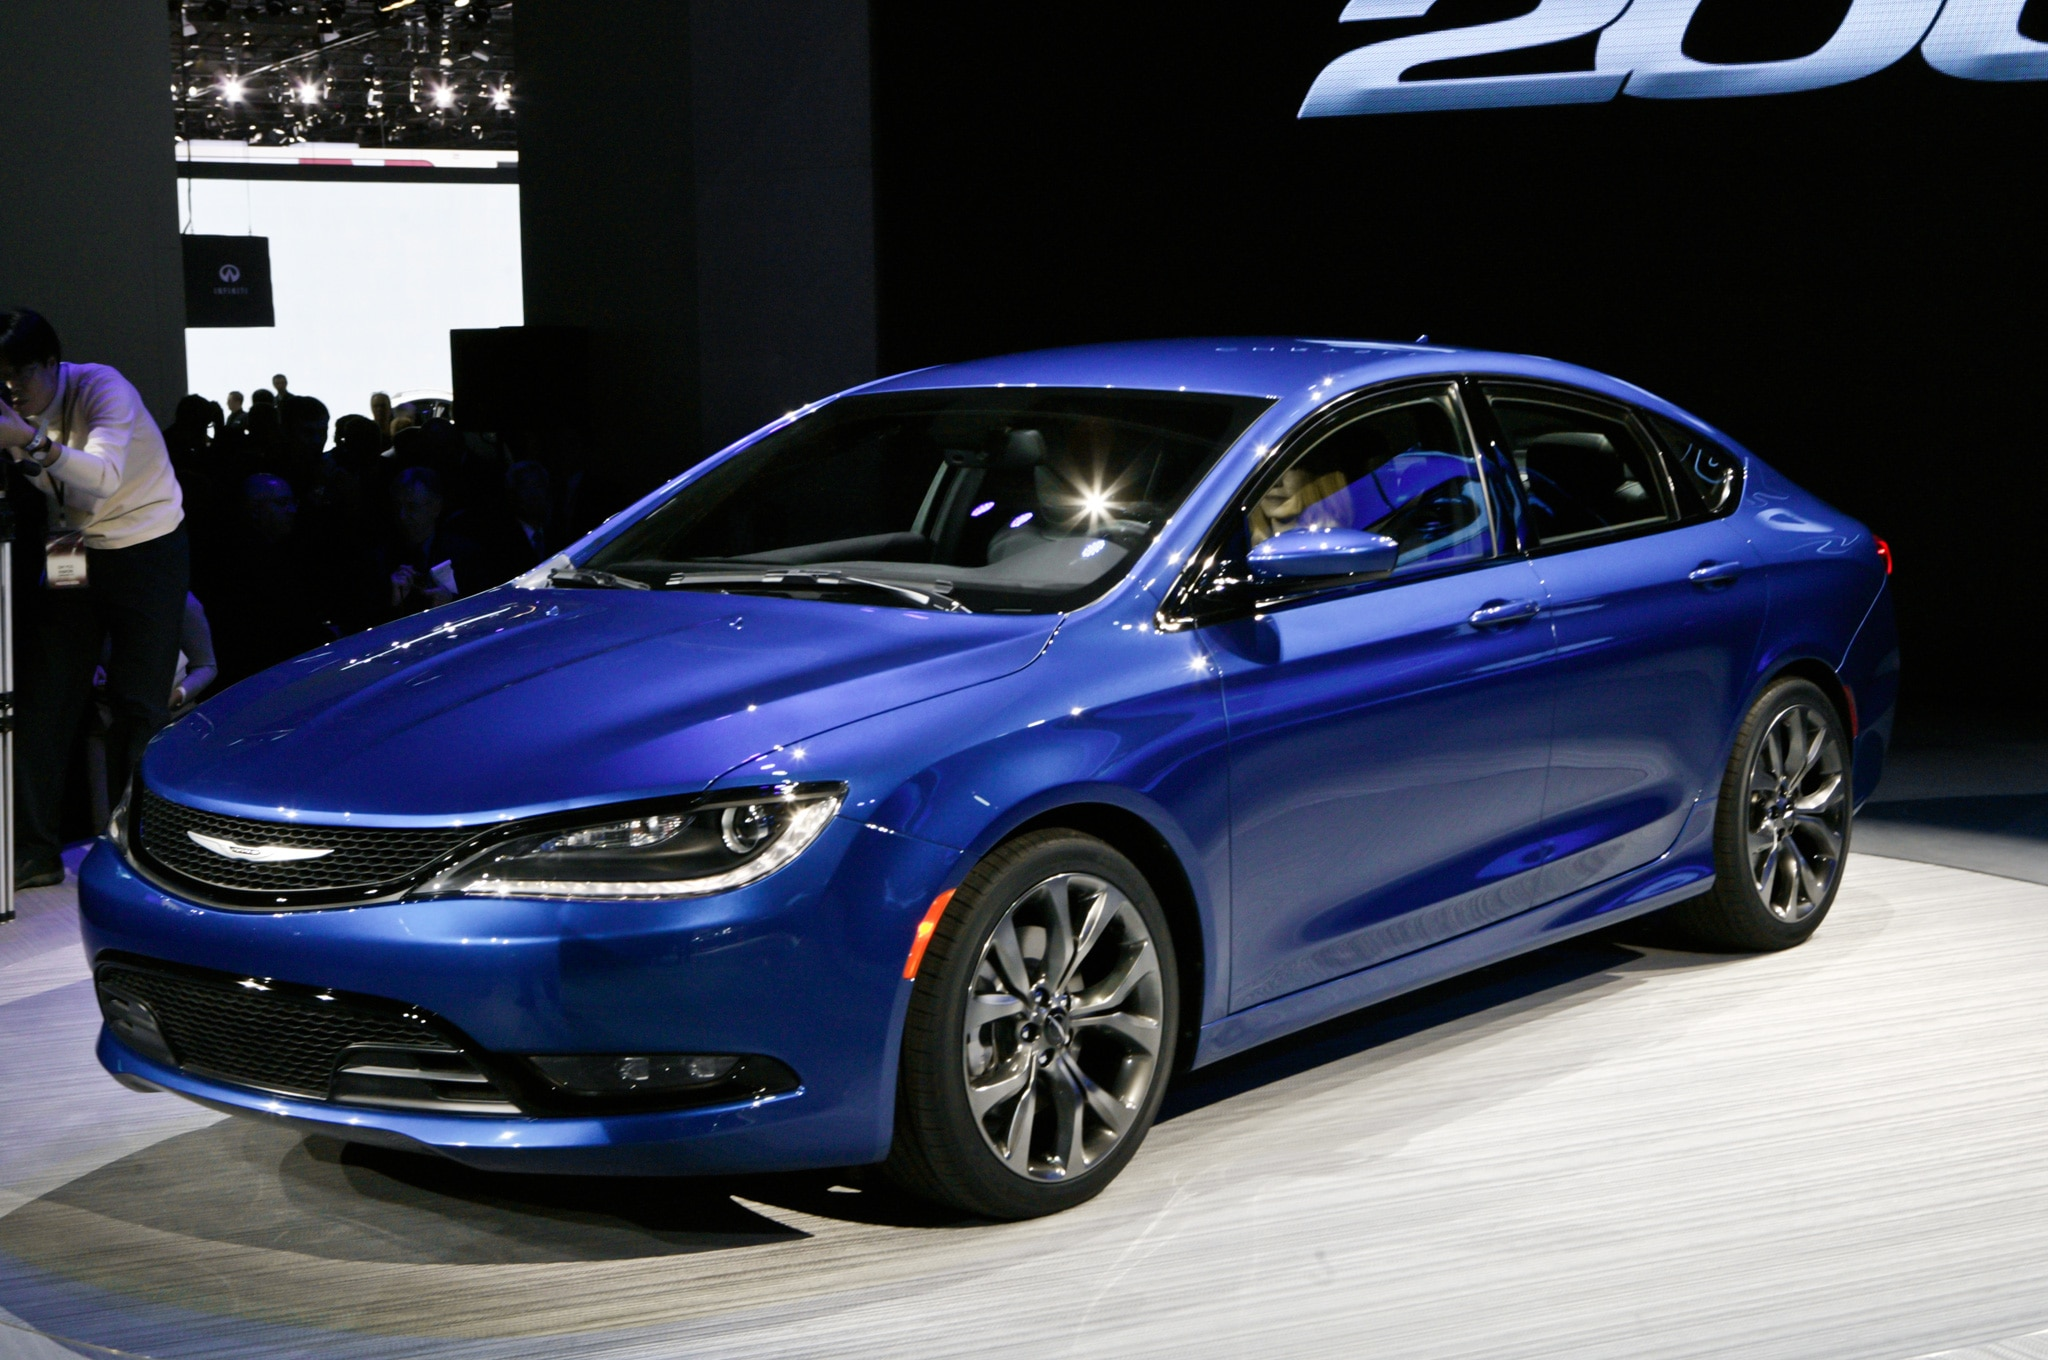 Detroit 2014 2015 Chrysler 200 Takes Aim at the Midsize Segment